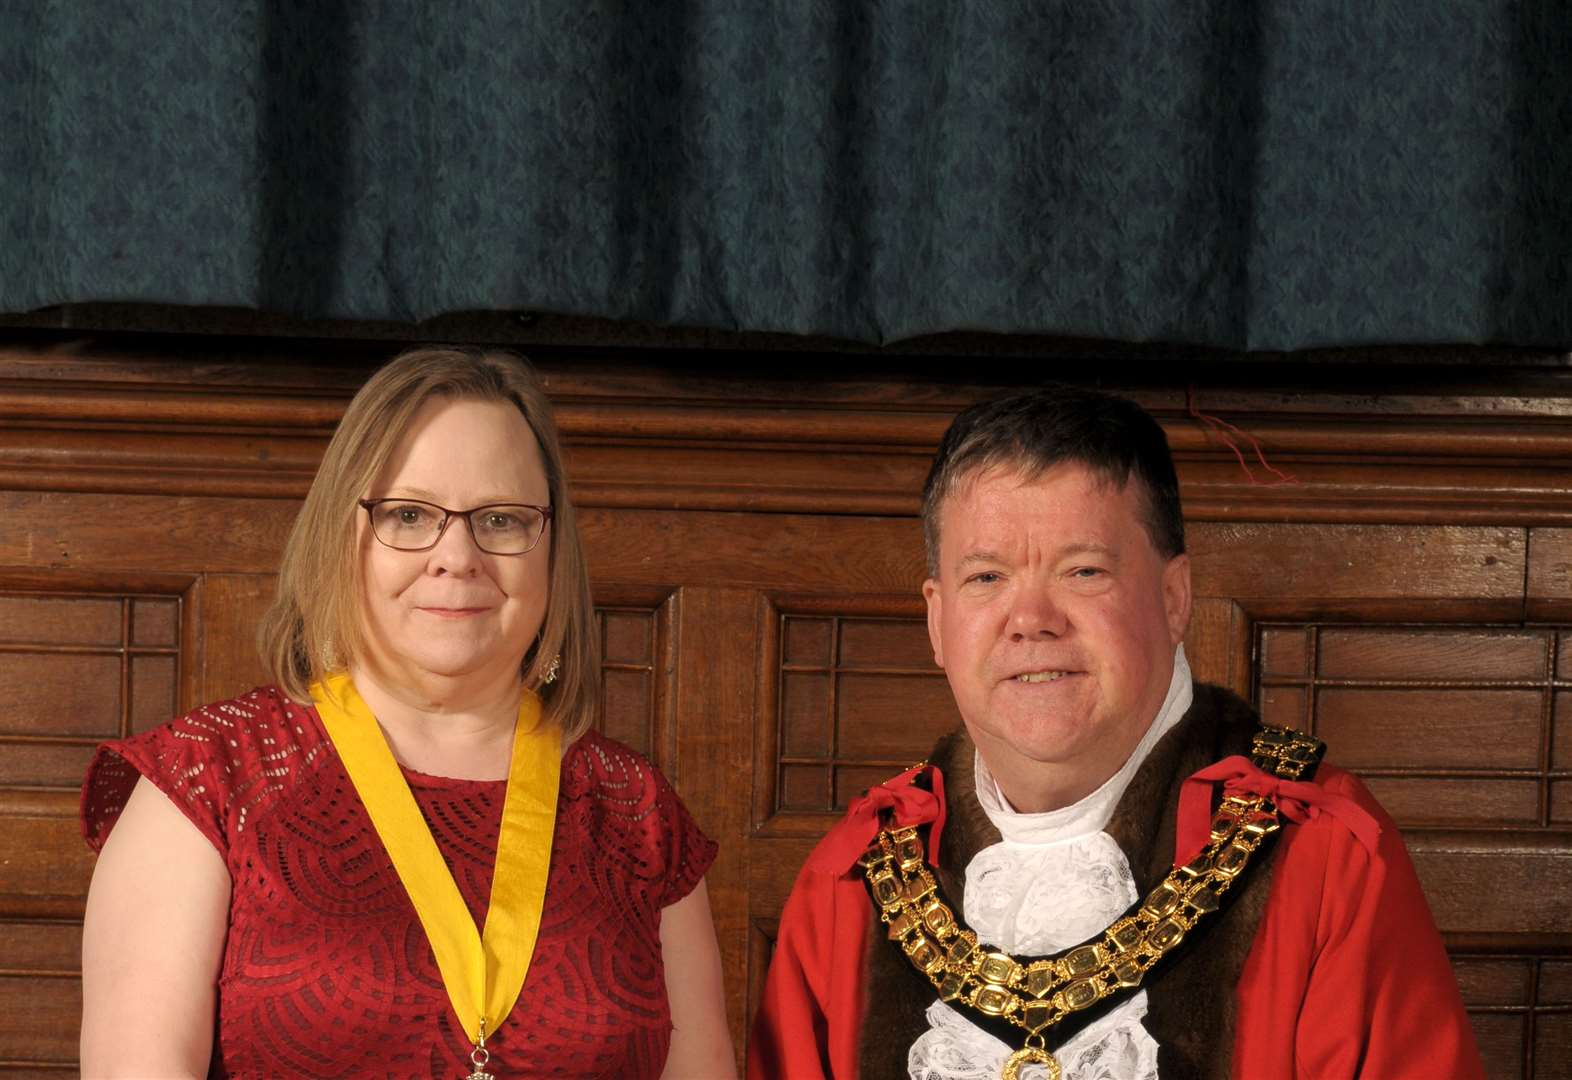 New mayor 'never expected' the role